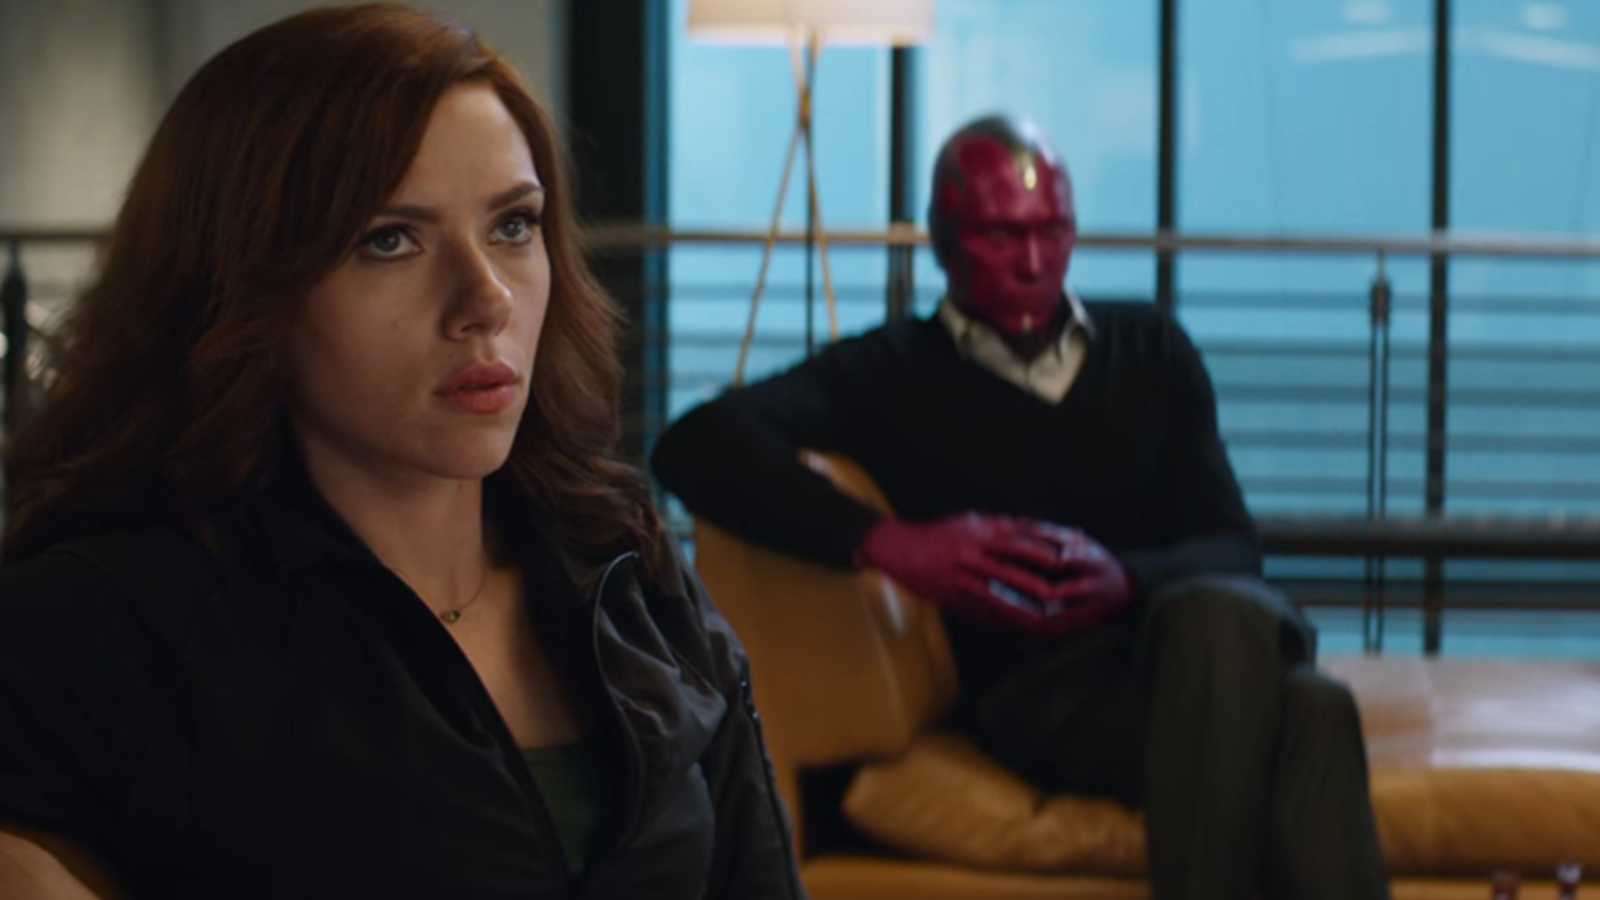 I Can't Get Over the Vision's Sweater in These Captain America: Civil War Clips